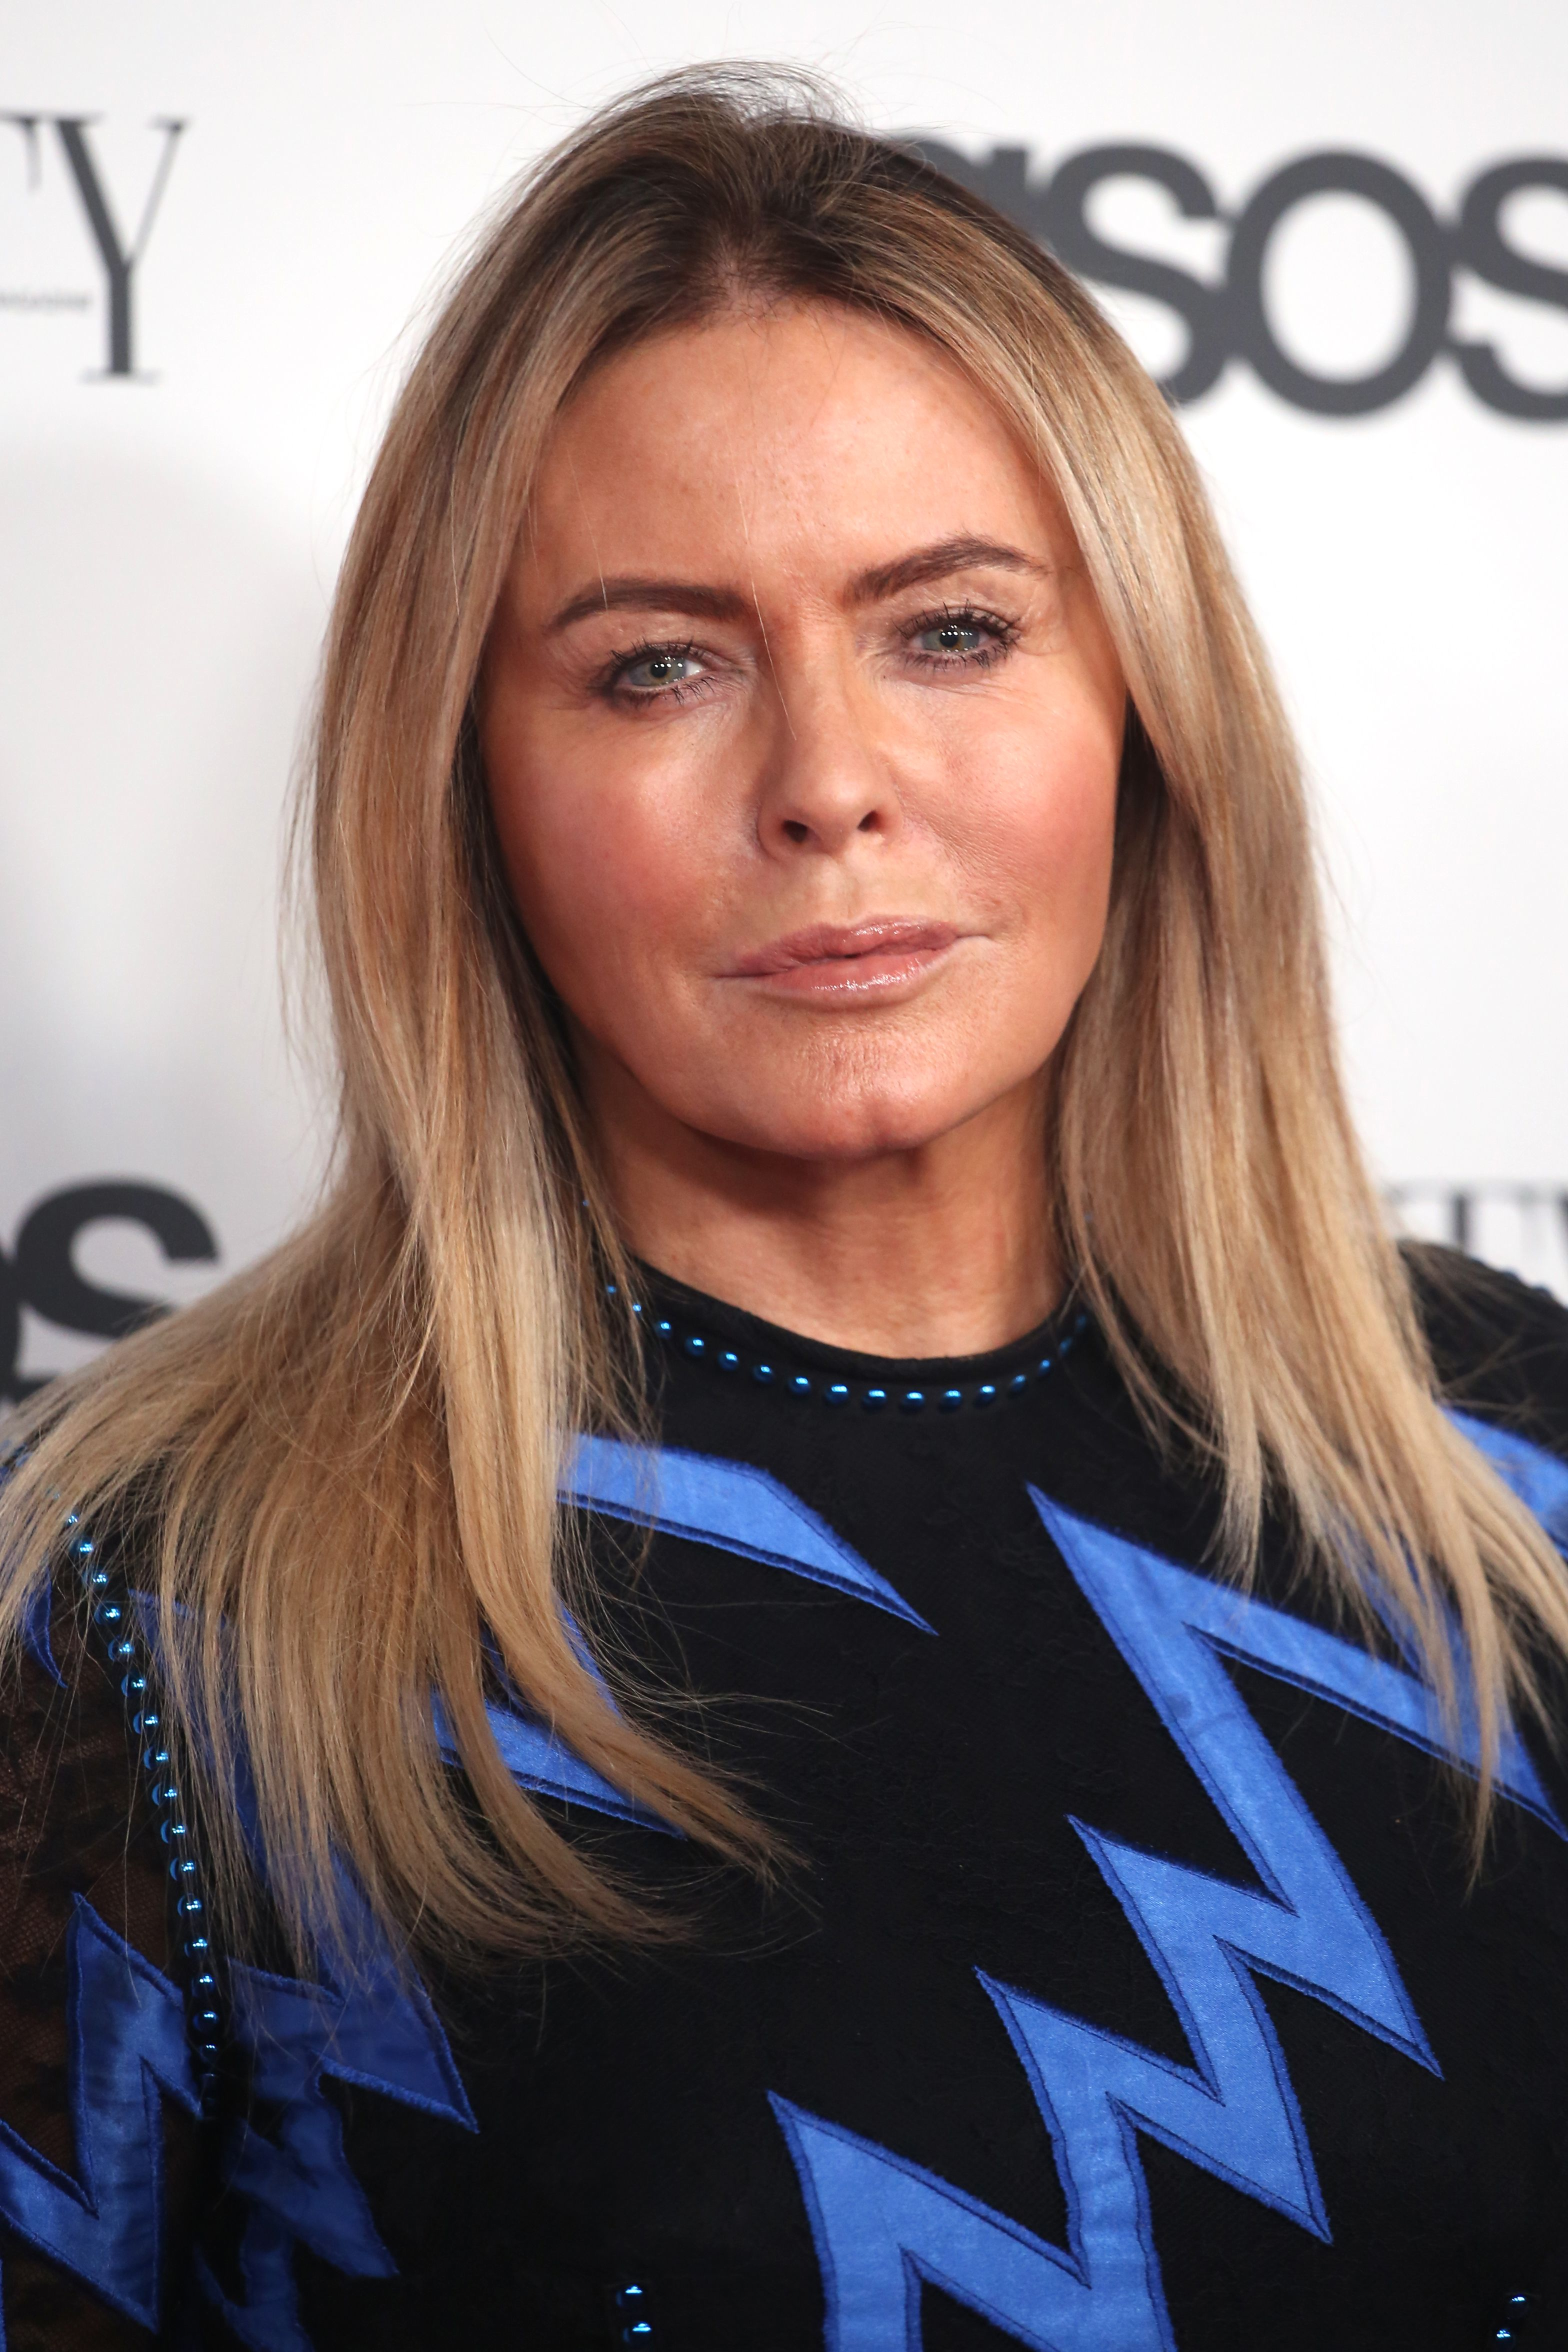 Patsy Kensit at The Beauty Awards 2019 on November 25, 2019 in London, England. | Photo: Getty Images